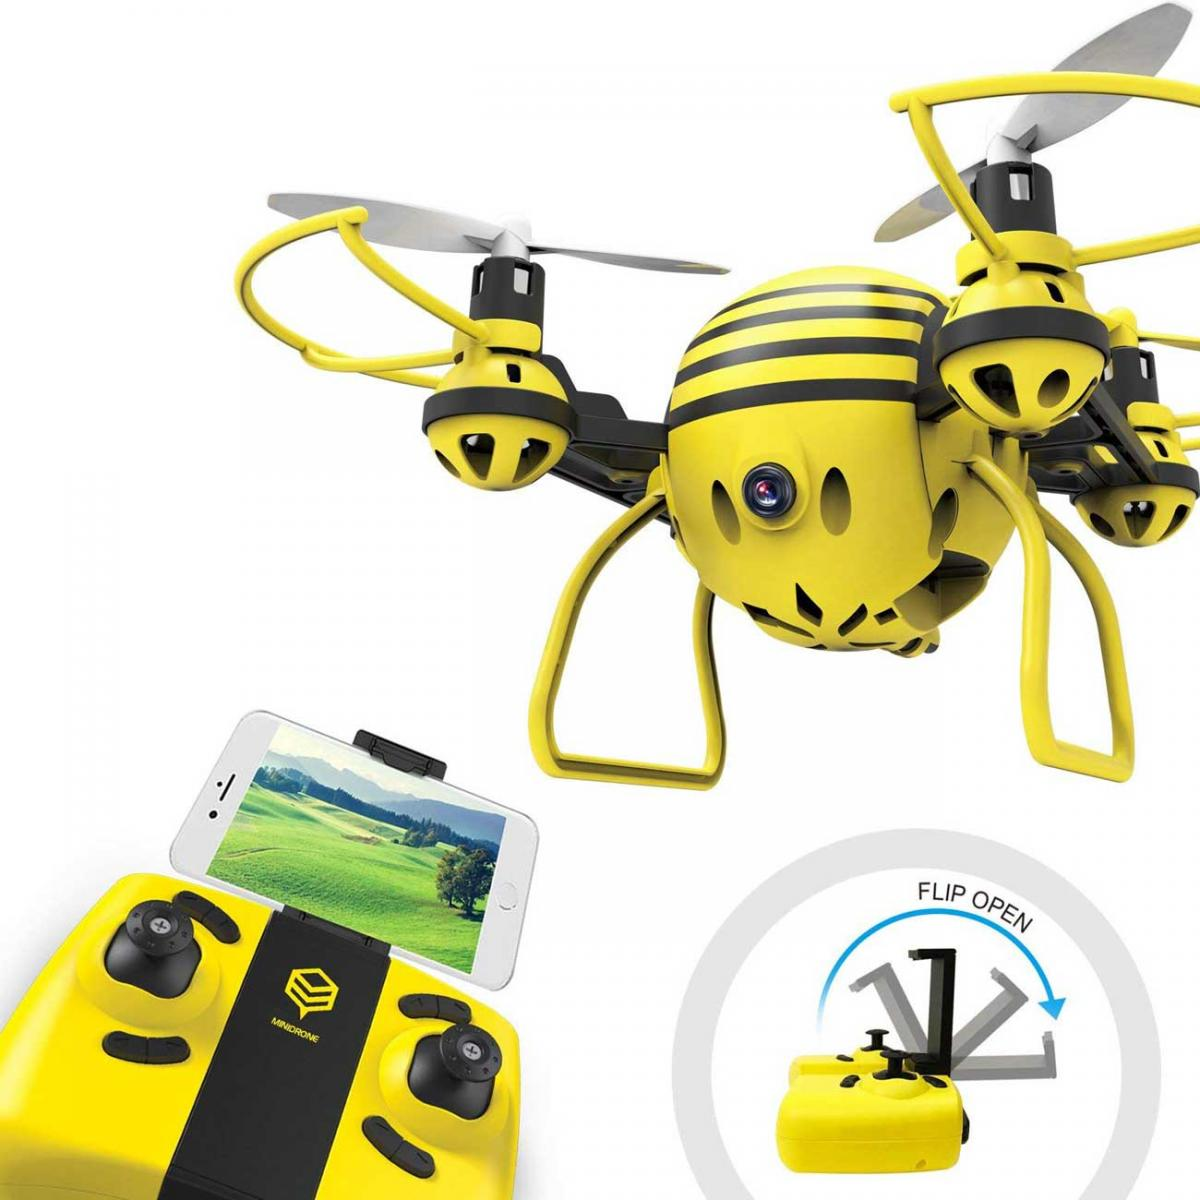 HASAKEE FPV RC Drone with HD WiFi Camera